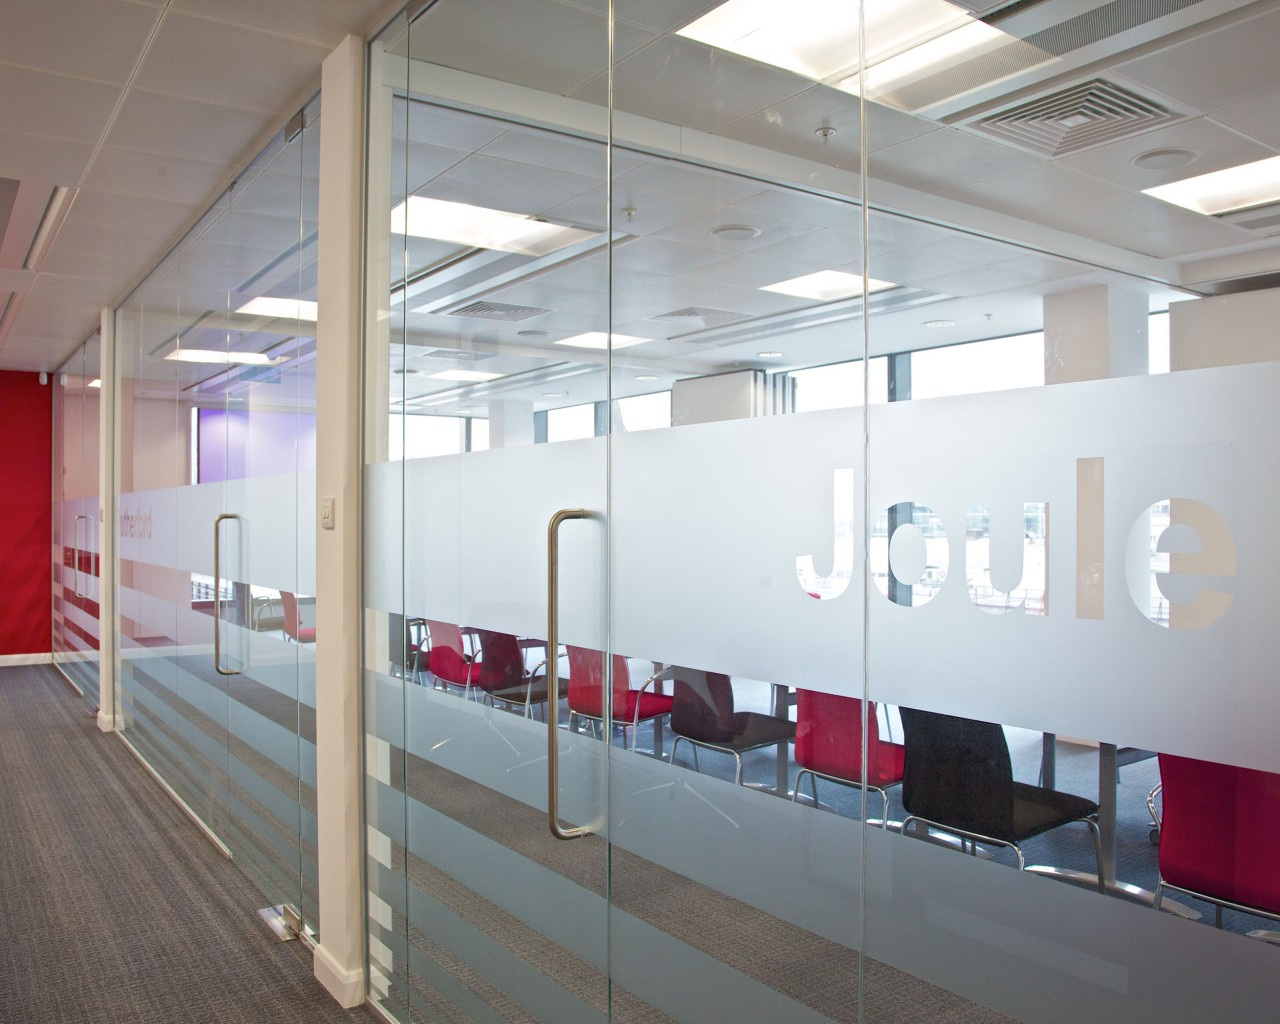 Glass Office partitioning Yorkshire, Leeds, Huddersfield, Halifax, Bradford, Wakefield